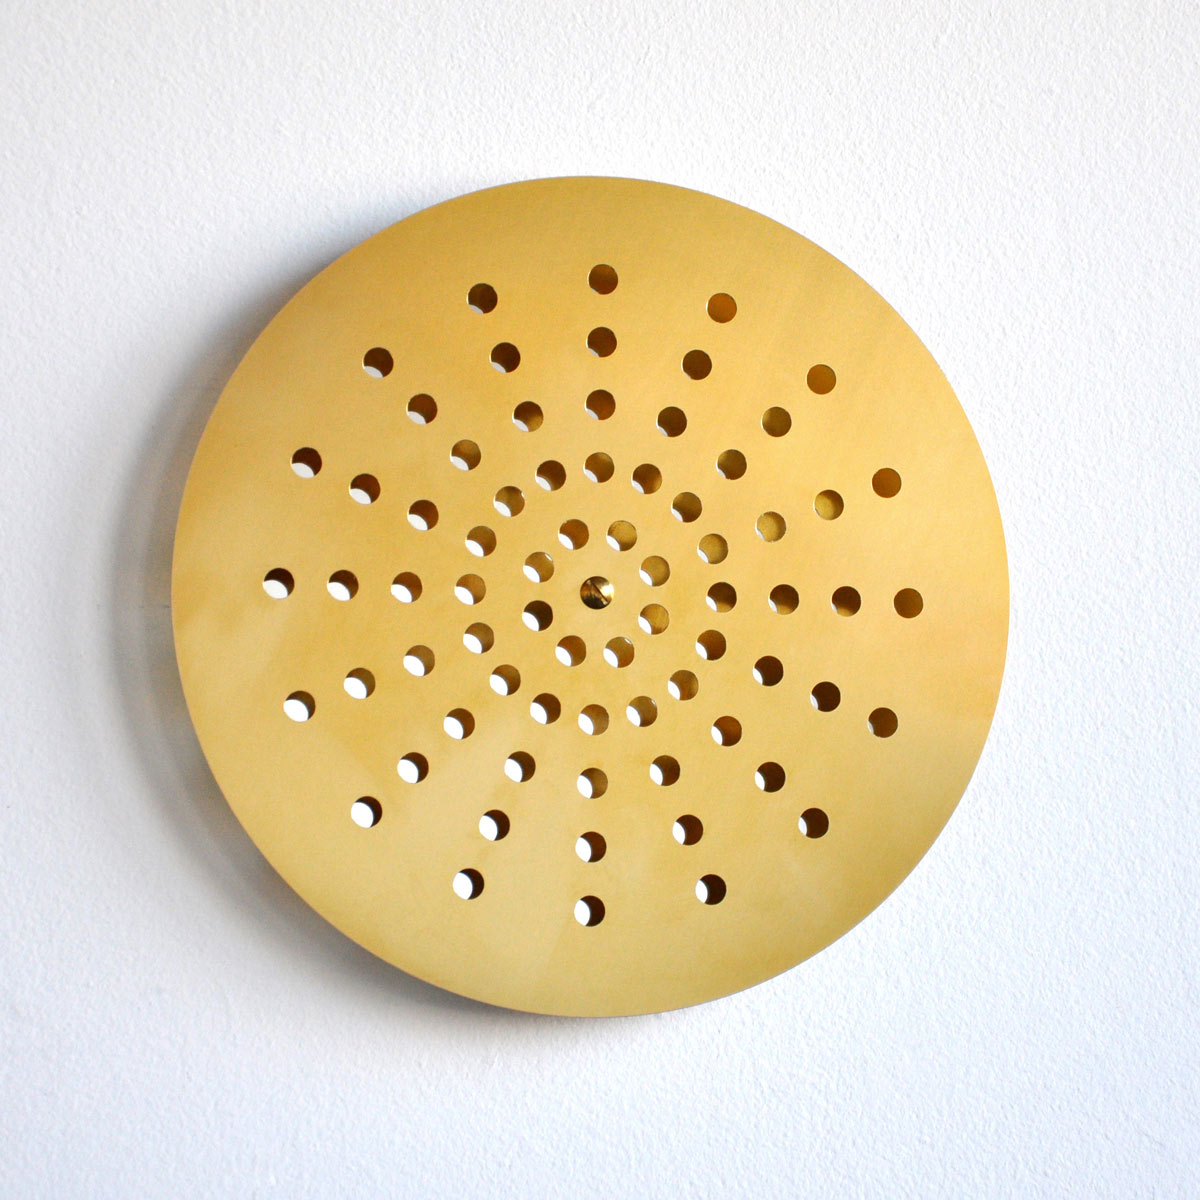 The Golden Shower, 2012, brass, mirror, Ø 35 x 1 cm